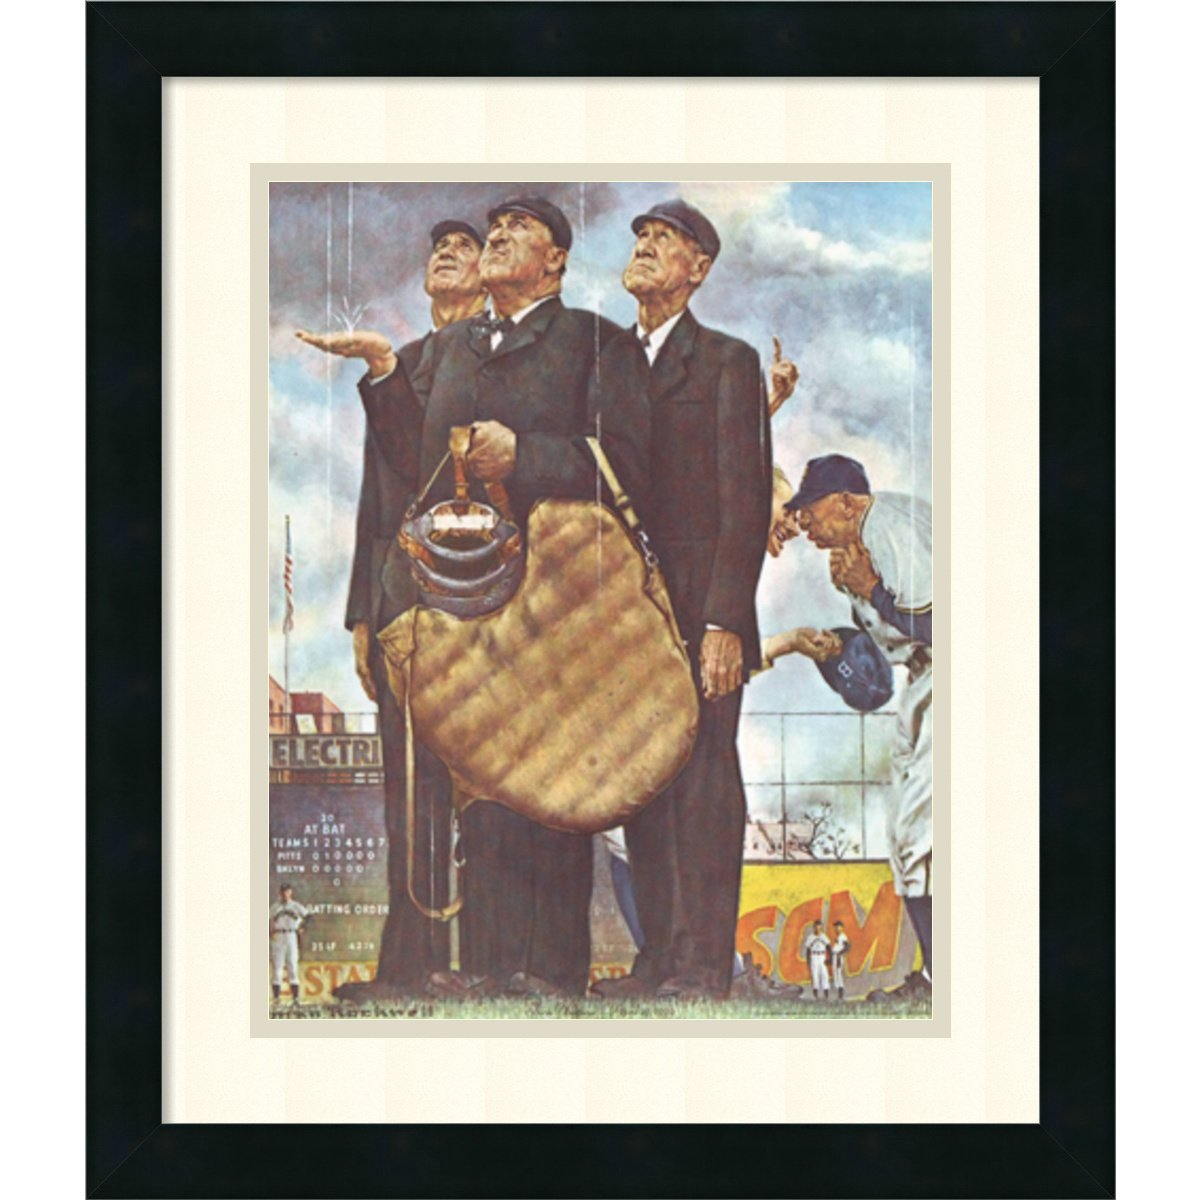 Framed Art Print, 'Three Umpires' by Norman Rockwell: Outer Size 17 x 20'' by Amanti Art